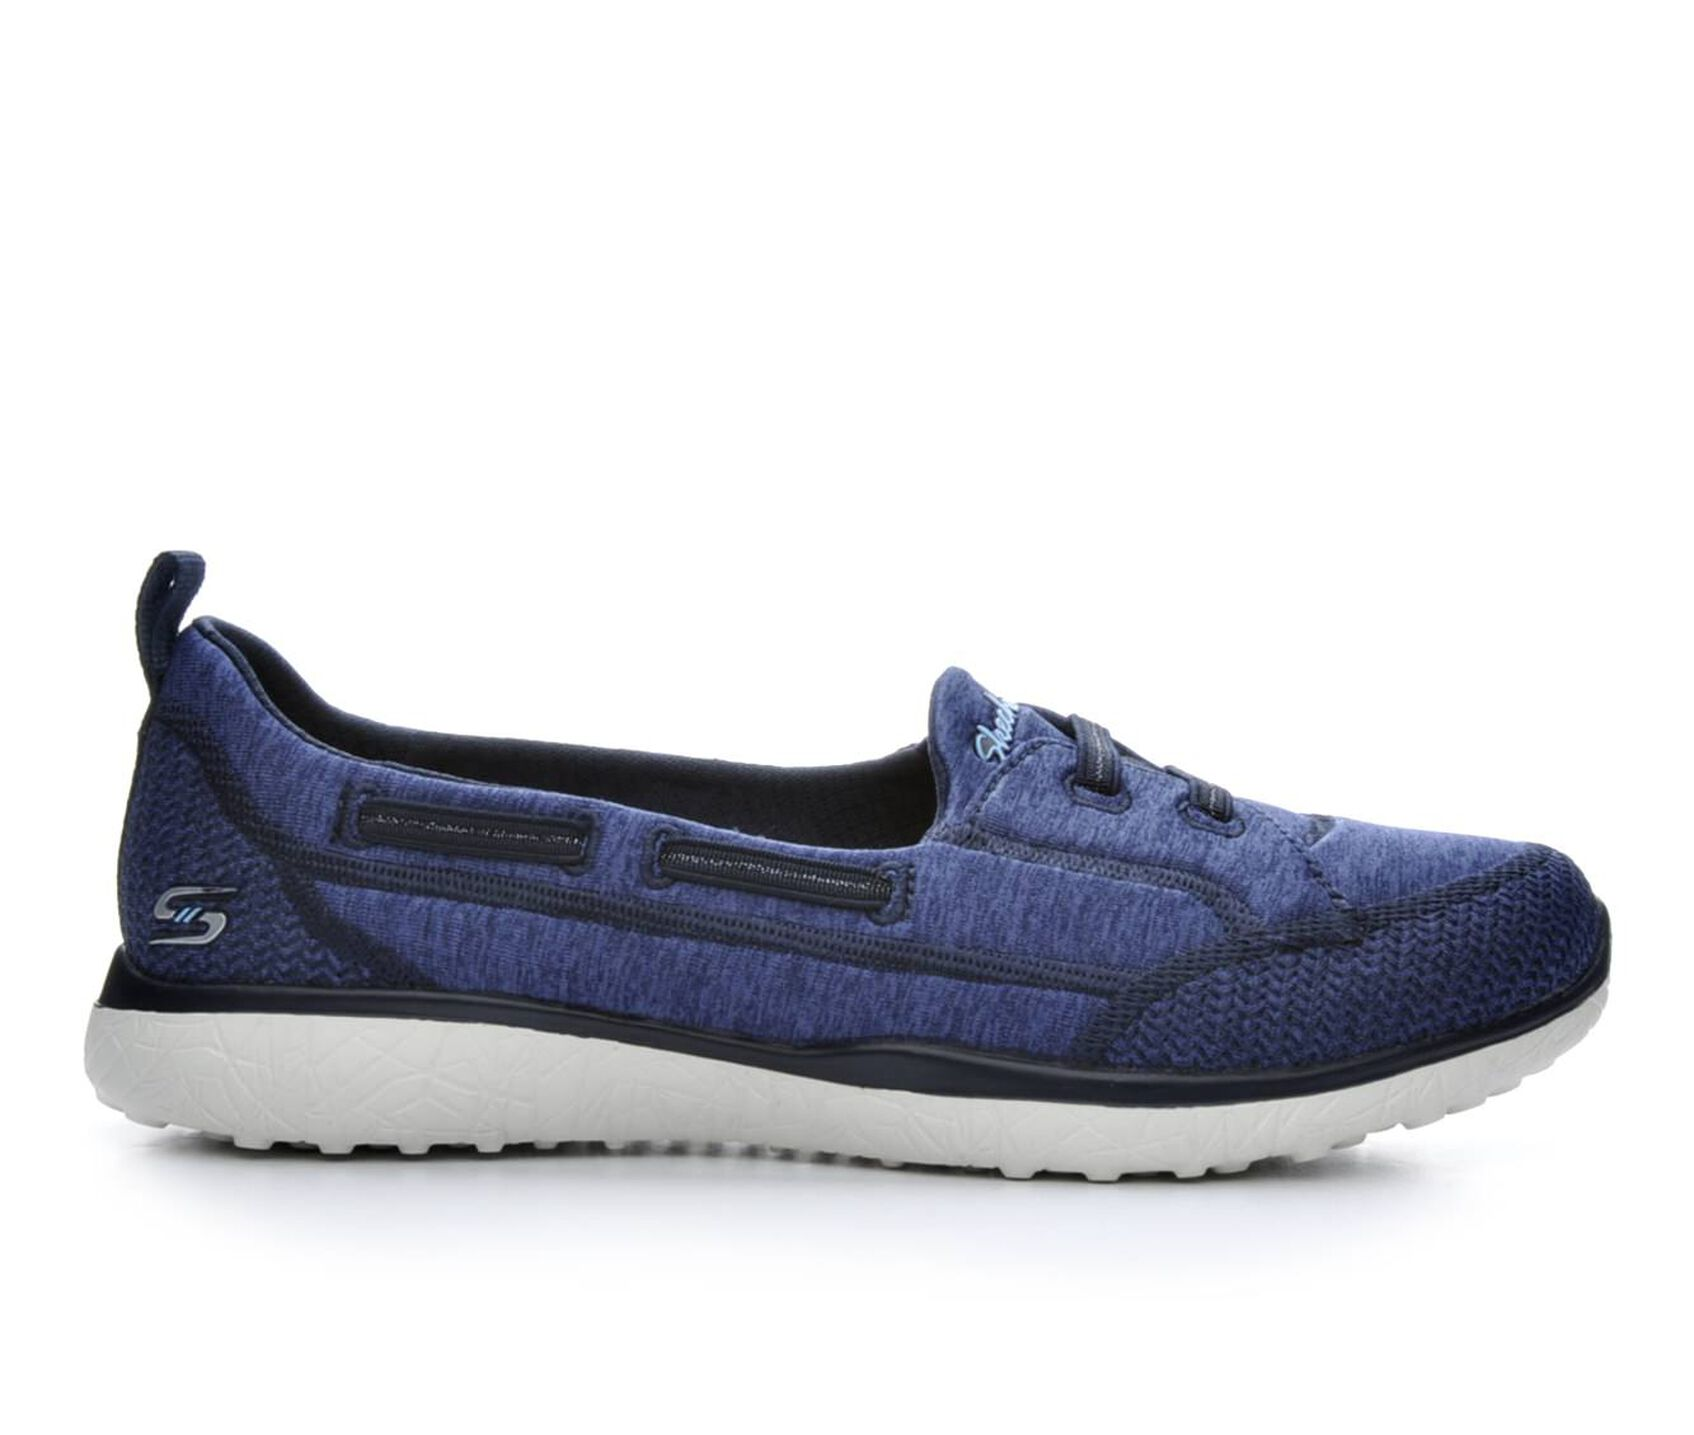 1e26a35fab3a ... Skechers Topnotch 23317 Slip-Ons. Previous